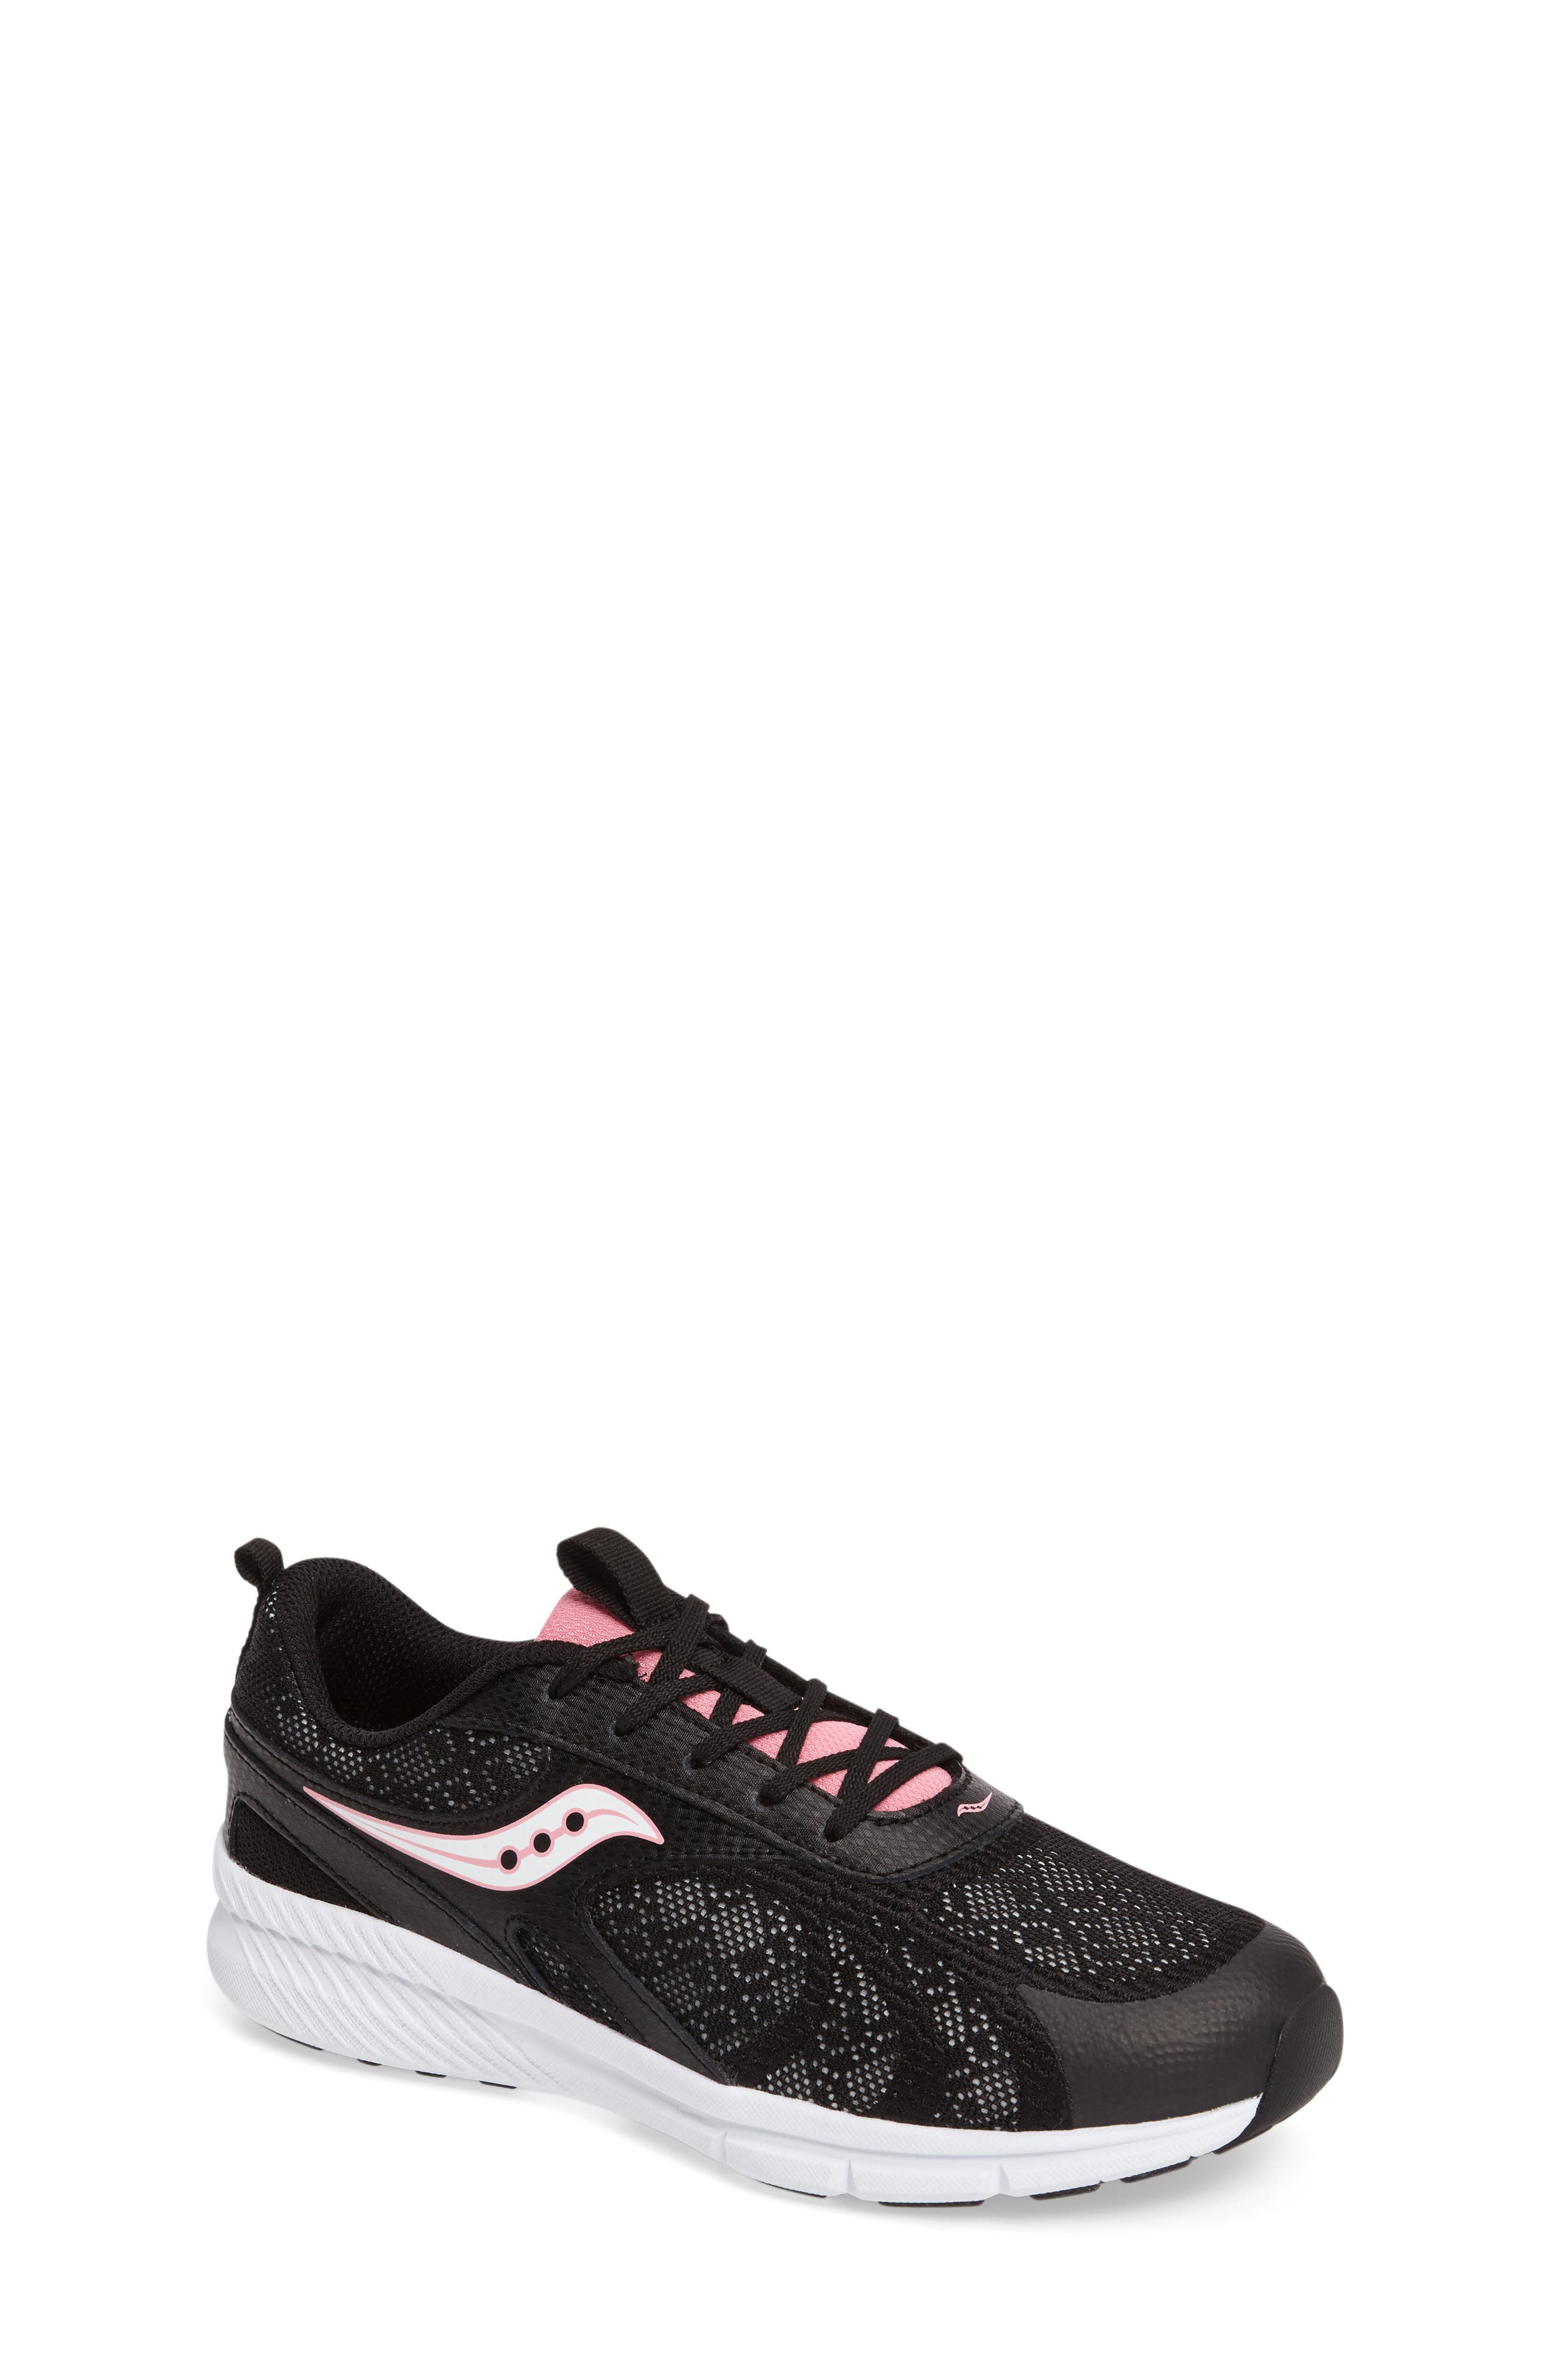 Alternate Image 1 Selected - Saucony Velocity Sneaker (Toddler, Little Kid & Big Kid)